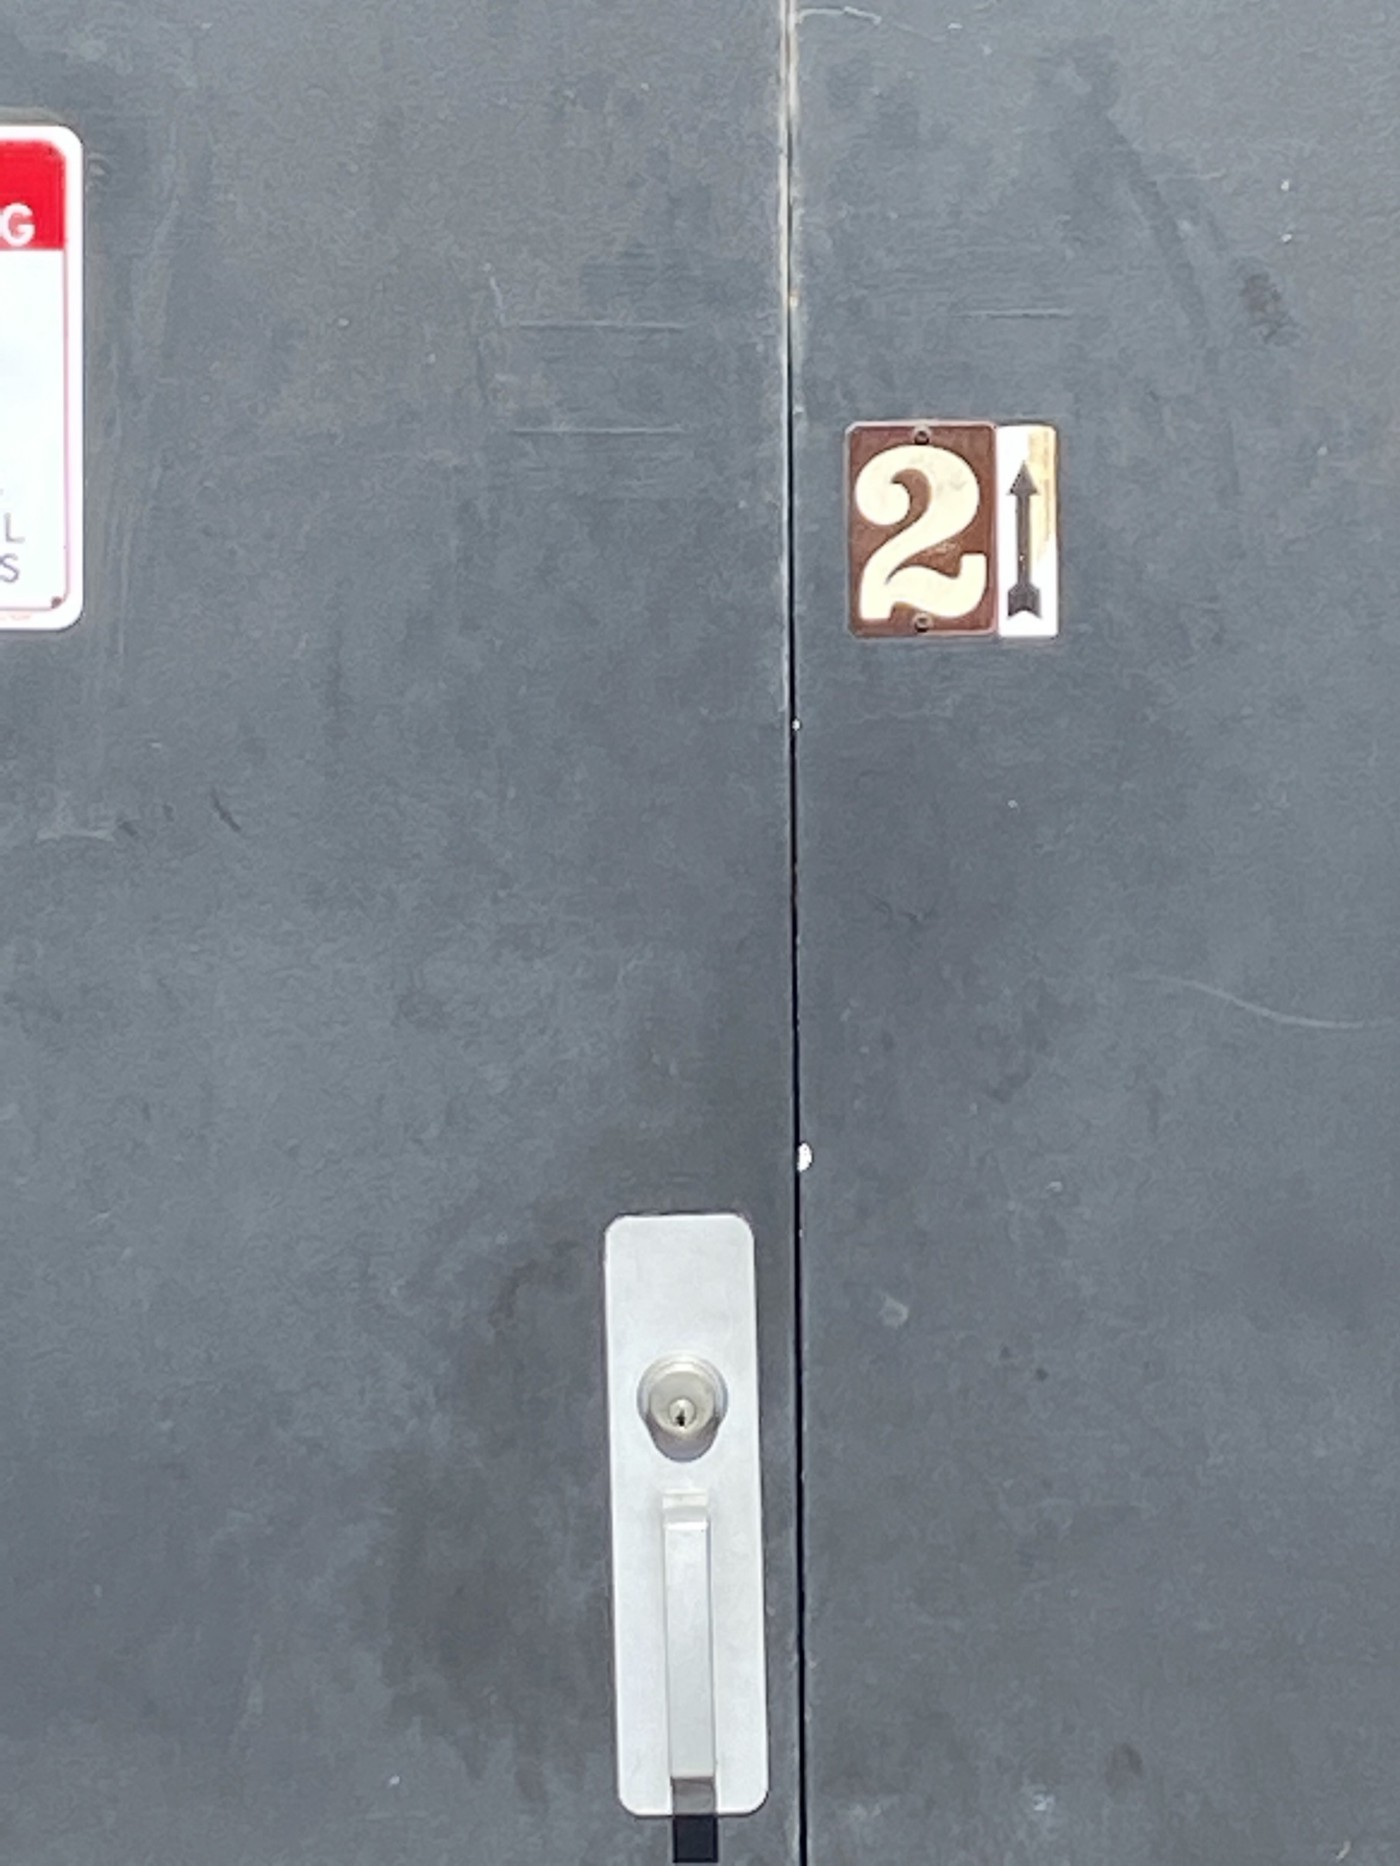 image of a door with the number 21 on it